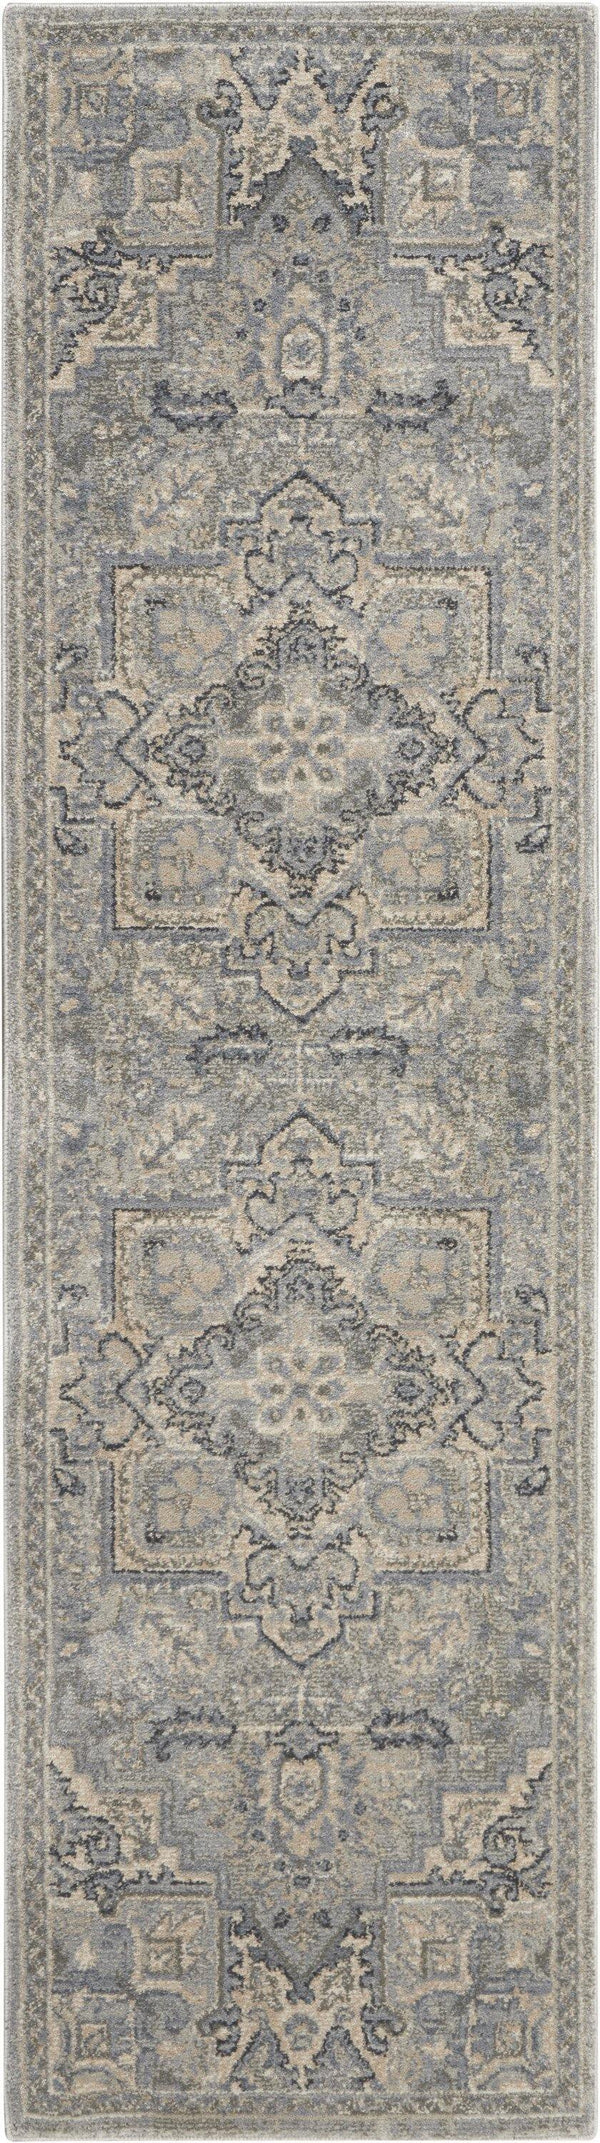 kathy ireland Moroccan Celebration KI382 Silver Area rug